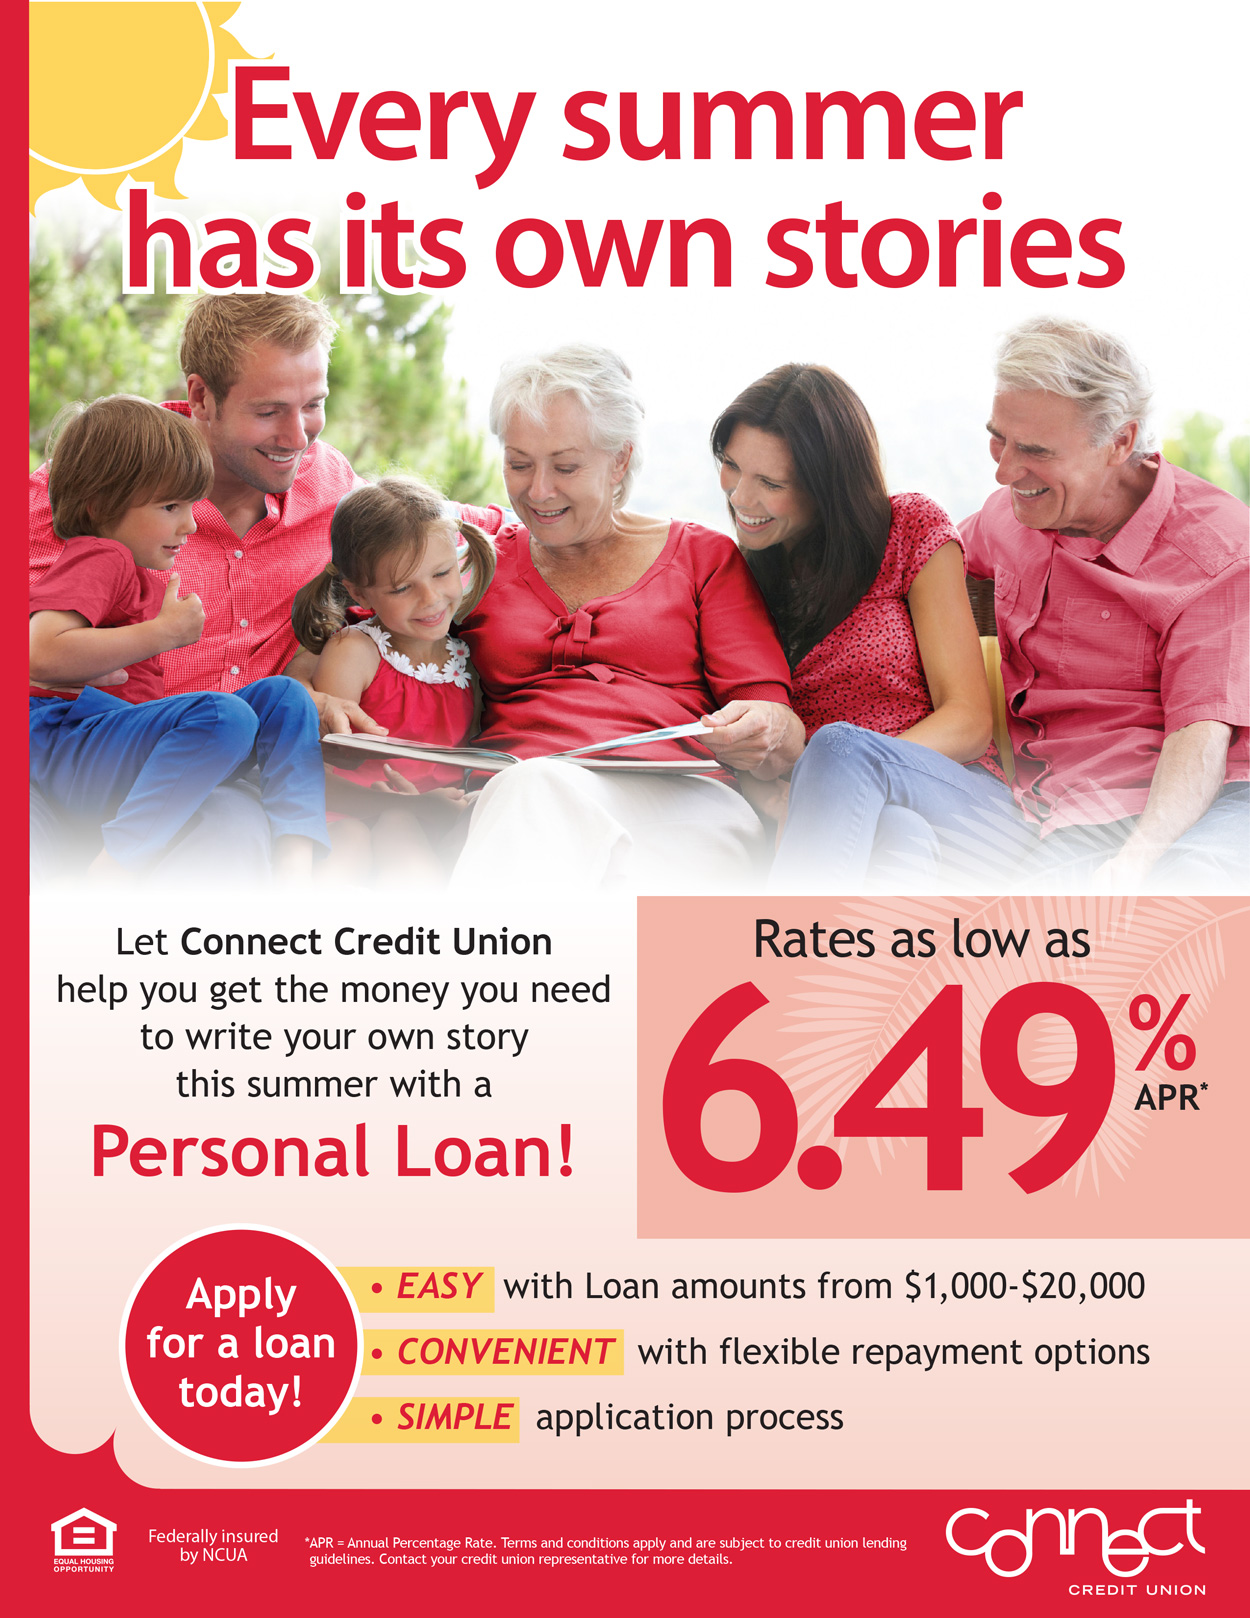 Get the money you need to write your own story this summer with a Personal Loan